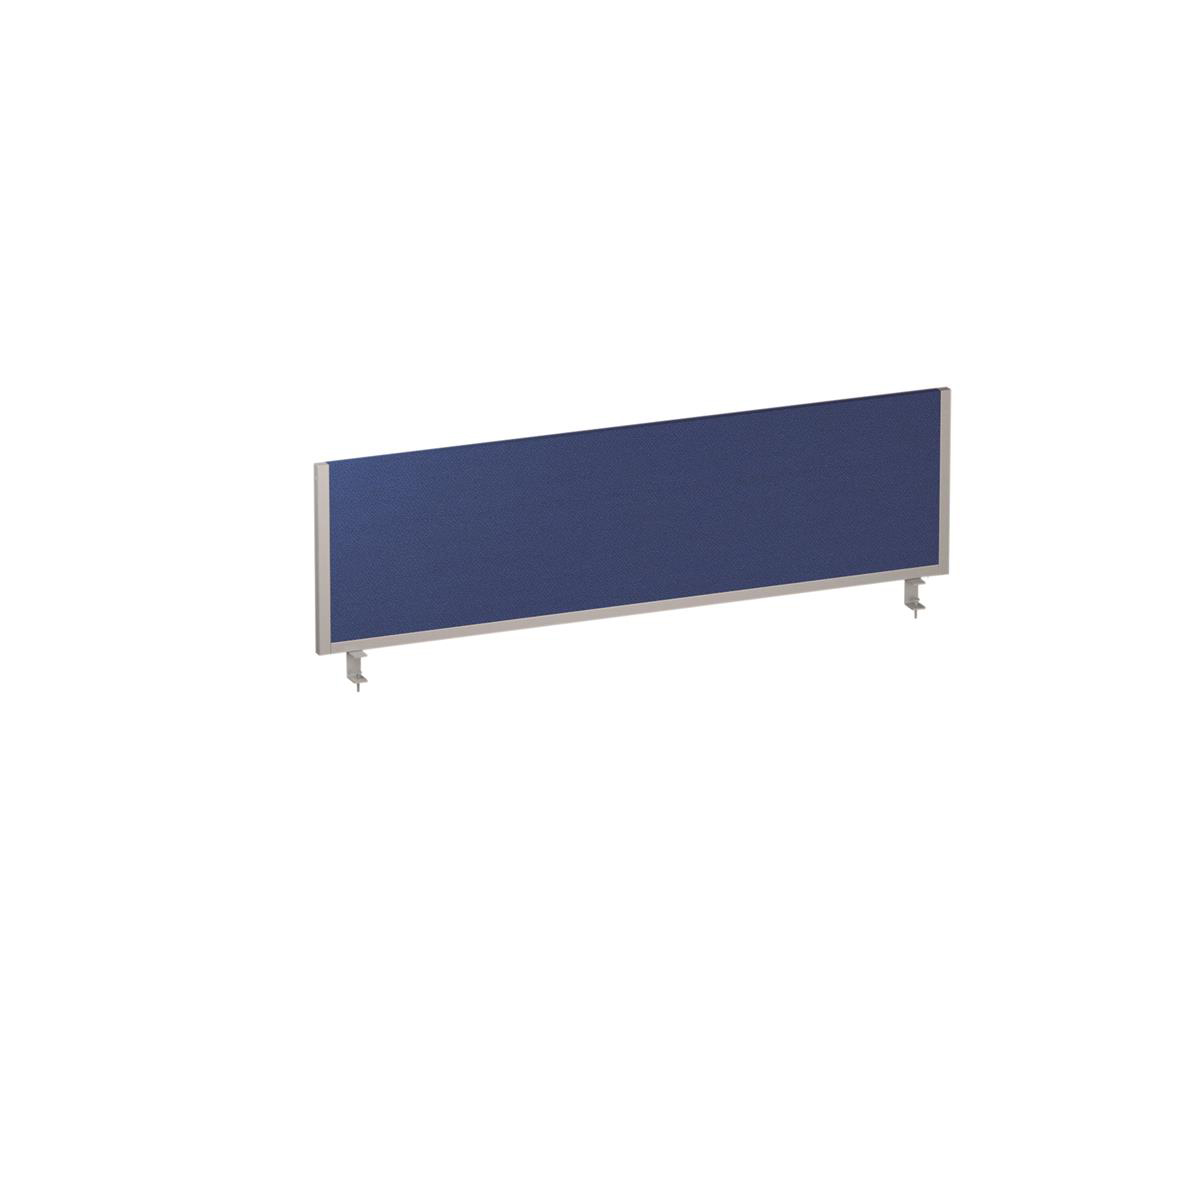 Trexus 1400mm x 300mm Rectangular Screen Blue 1400x300mm Ref I002877